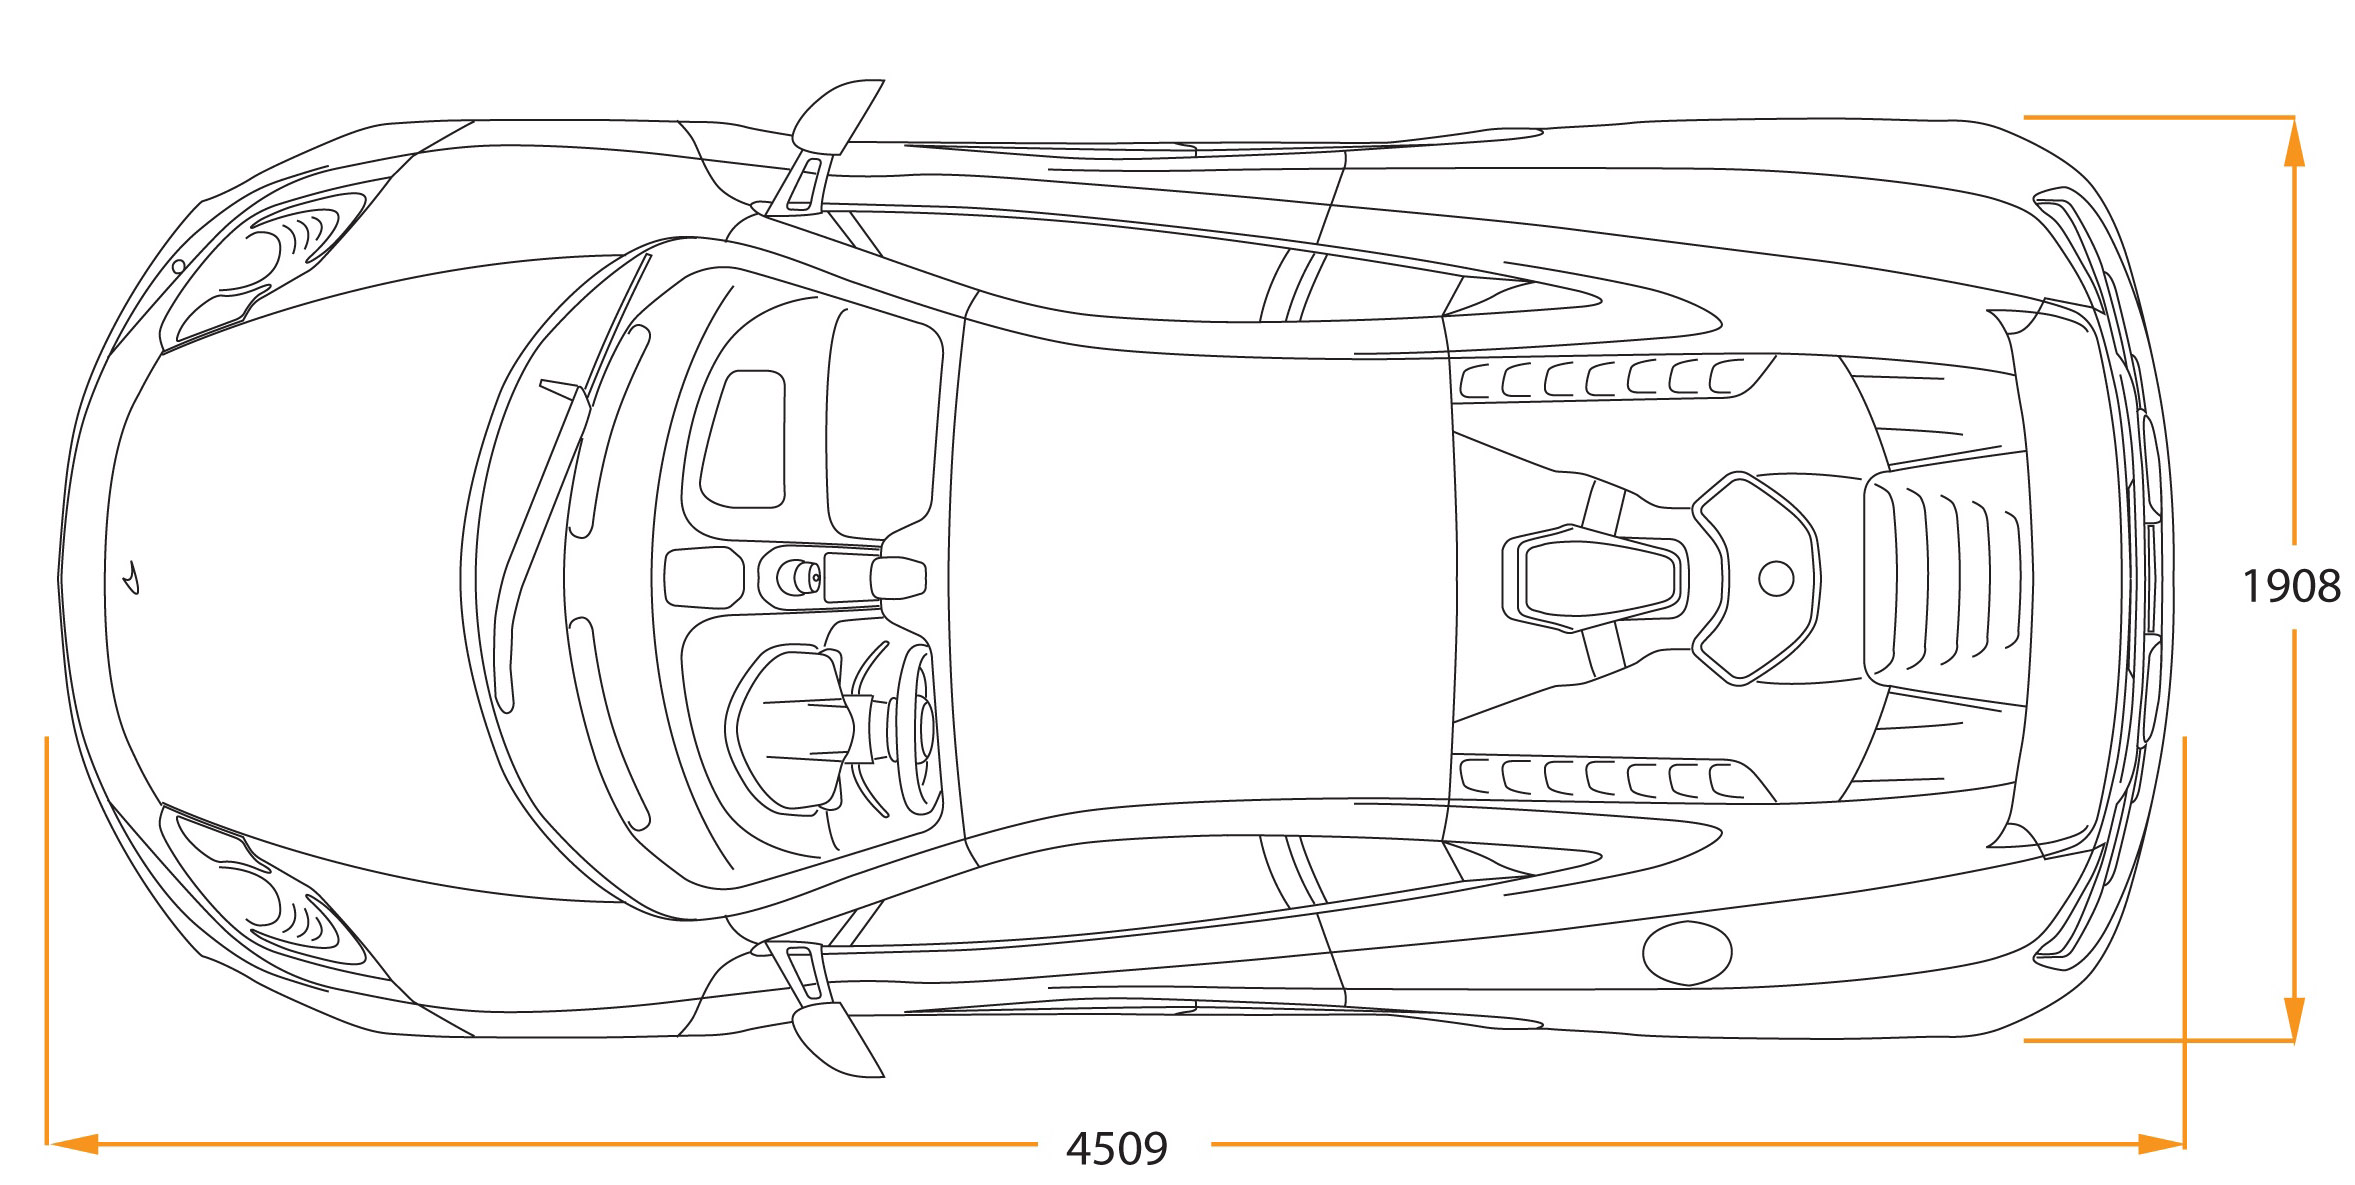 mclaren_mp4_12c_11_draw_top Outstanding Lamborghini Countach 25th Anniversary '88 Cars Trend